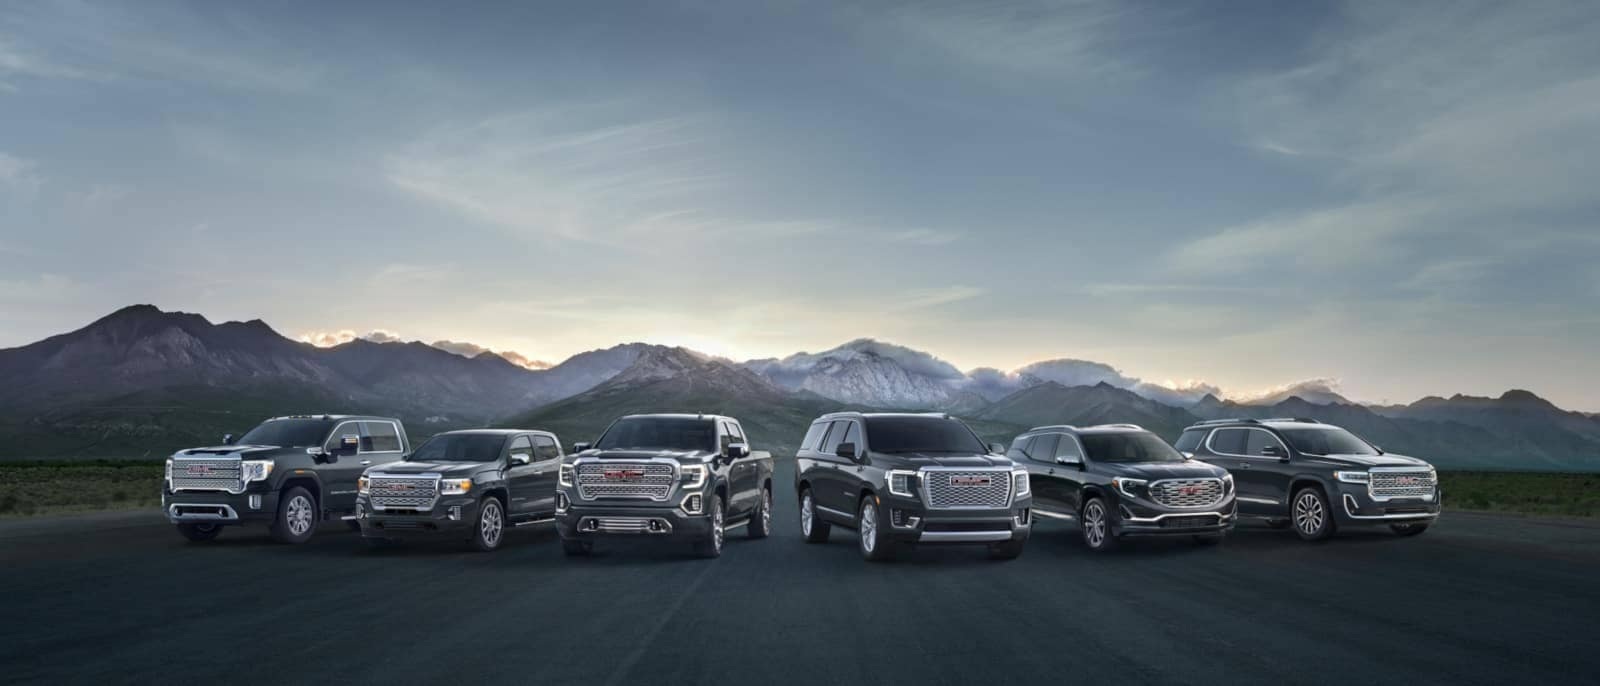 The 2020 GMC Denali Lineup